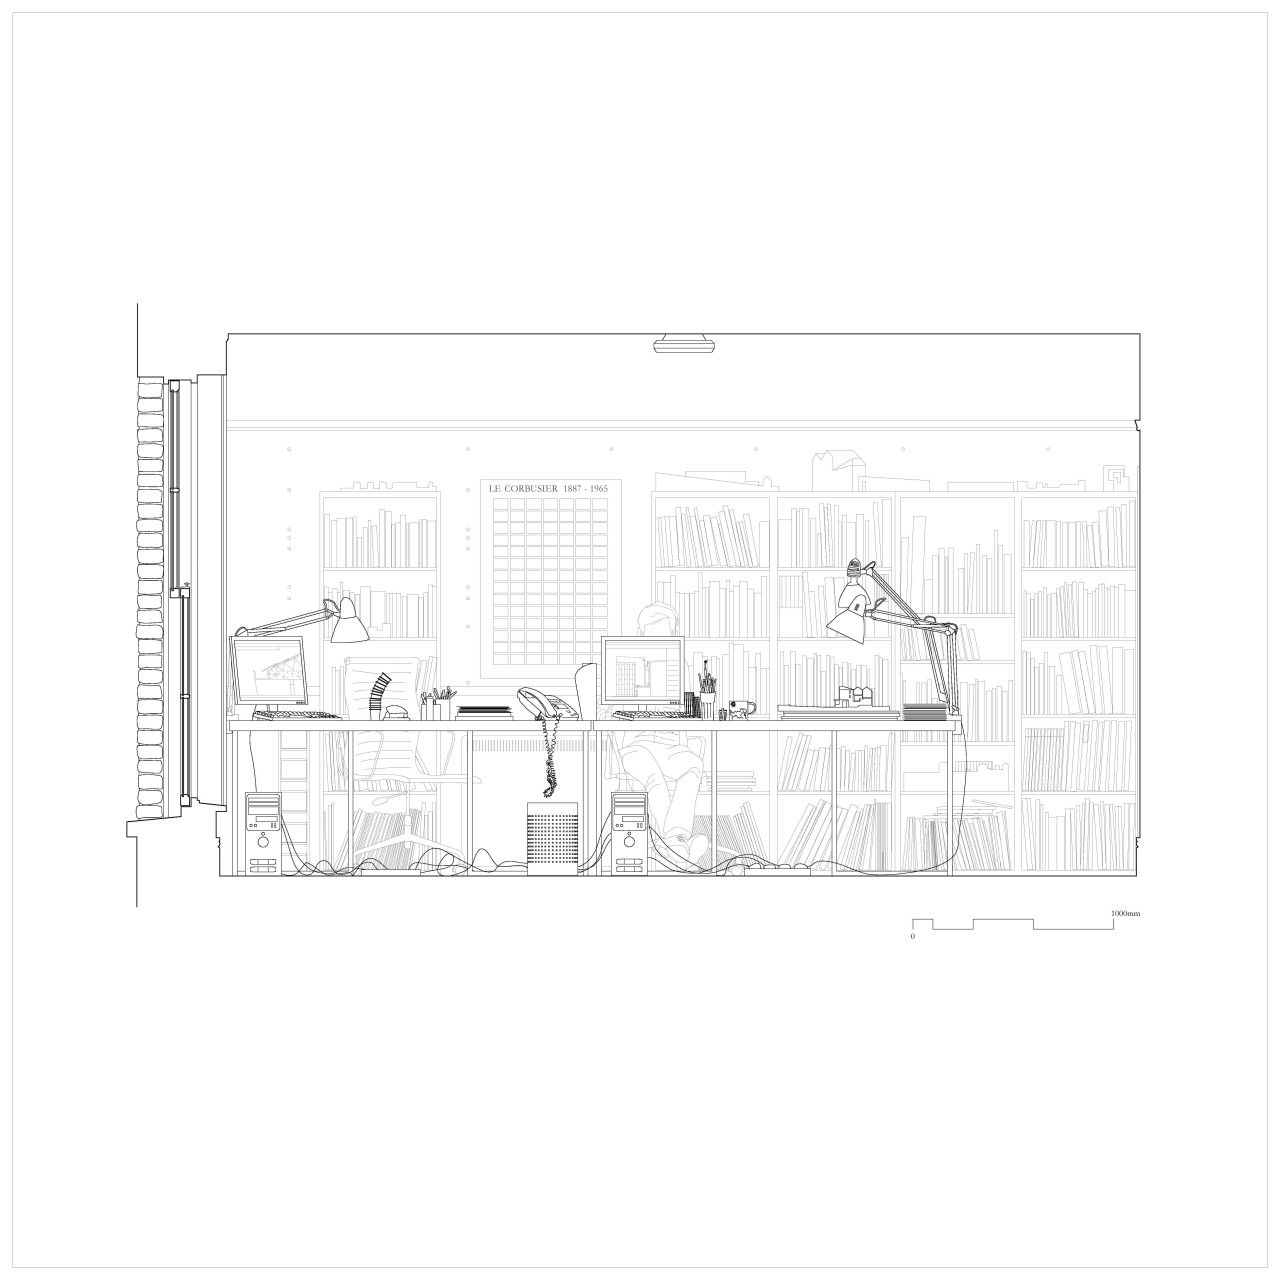 Plattenbaustudio 19a Baggot Street Elevation Drawing Of